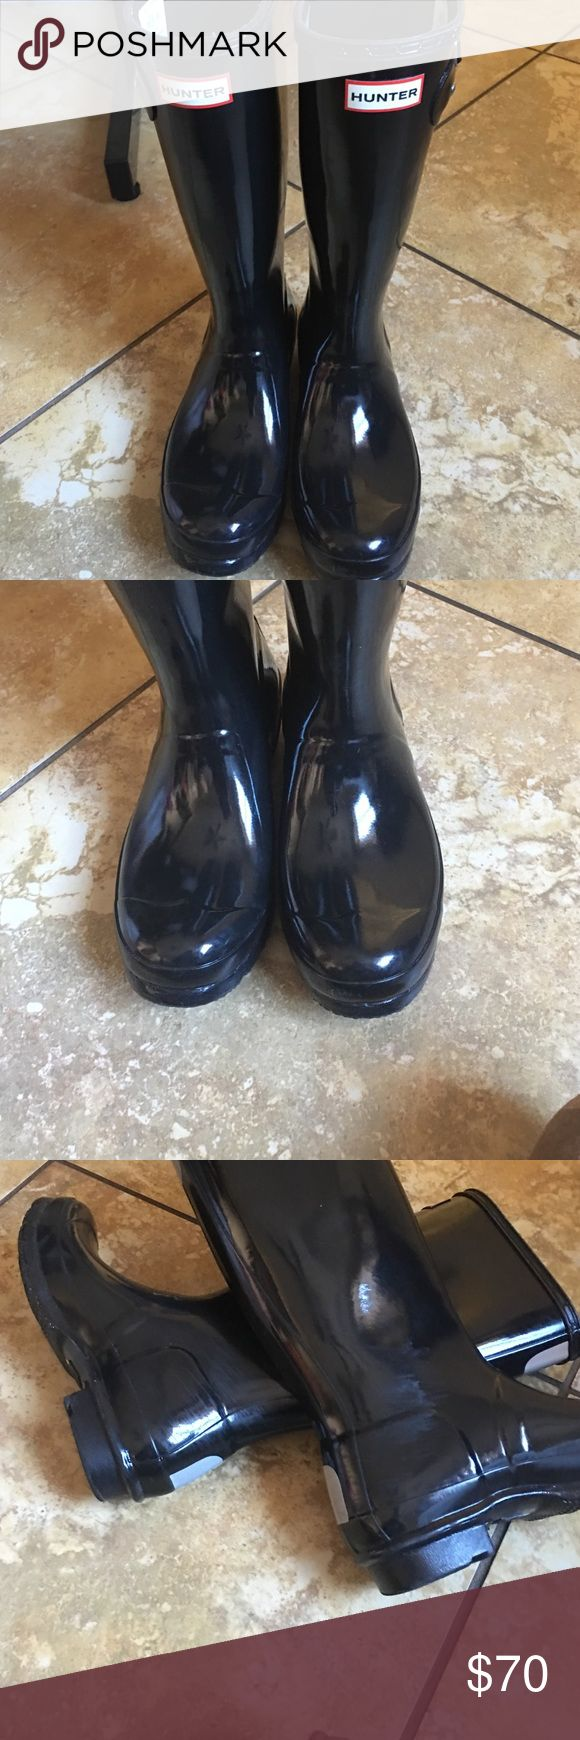 Hunter boots Black hunter boots great condition just a couple of scuffs on the boot as shown in picture but other than that very nice Hunter Boots Shoes Rain & Snow Boots